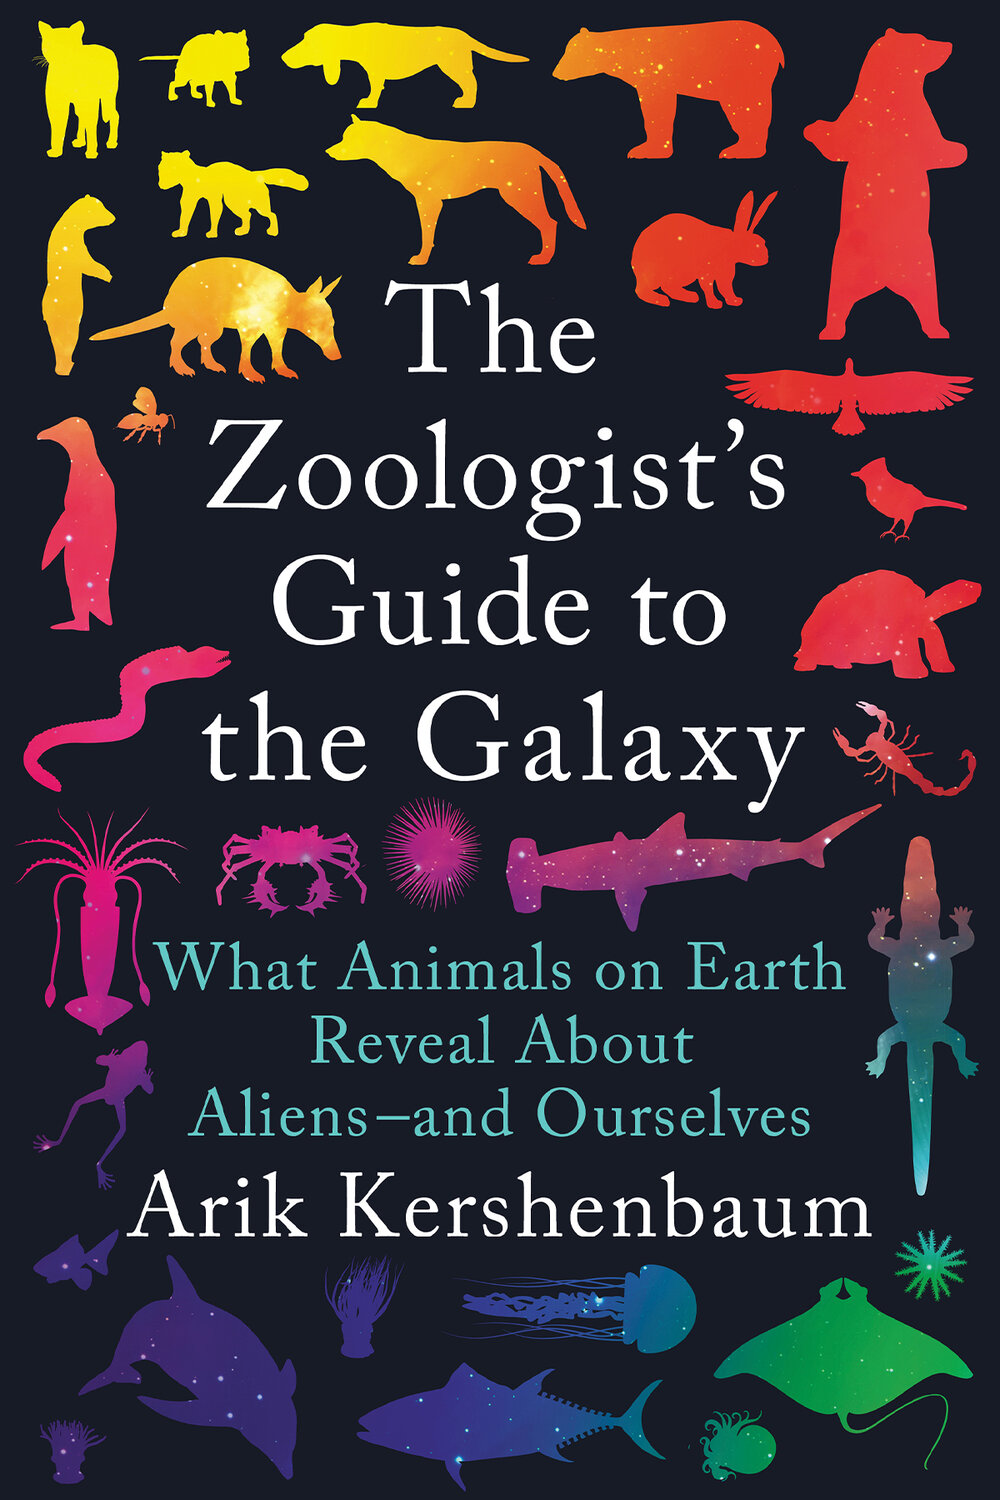 The Zoologist's Guide to the Galaxy: What Animals on Earth Reveal About Aliens-and Ourselves by Arik Kershenbaum